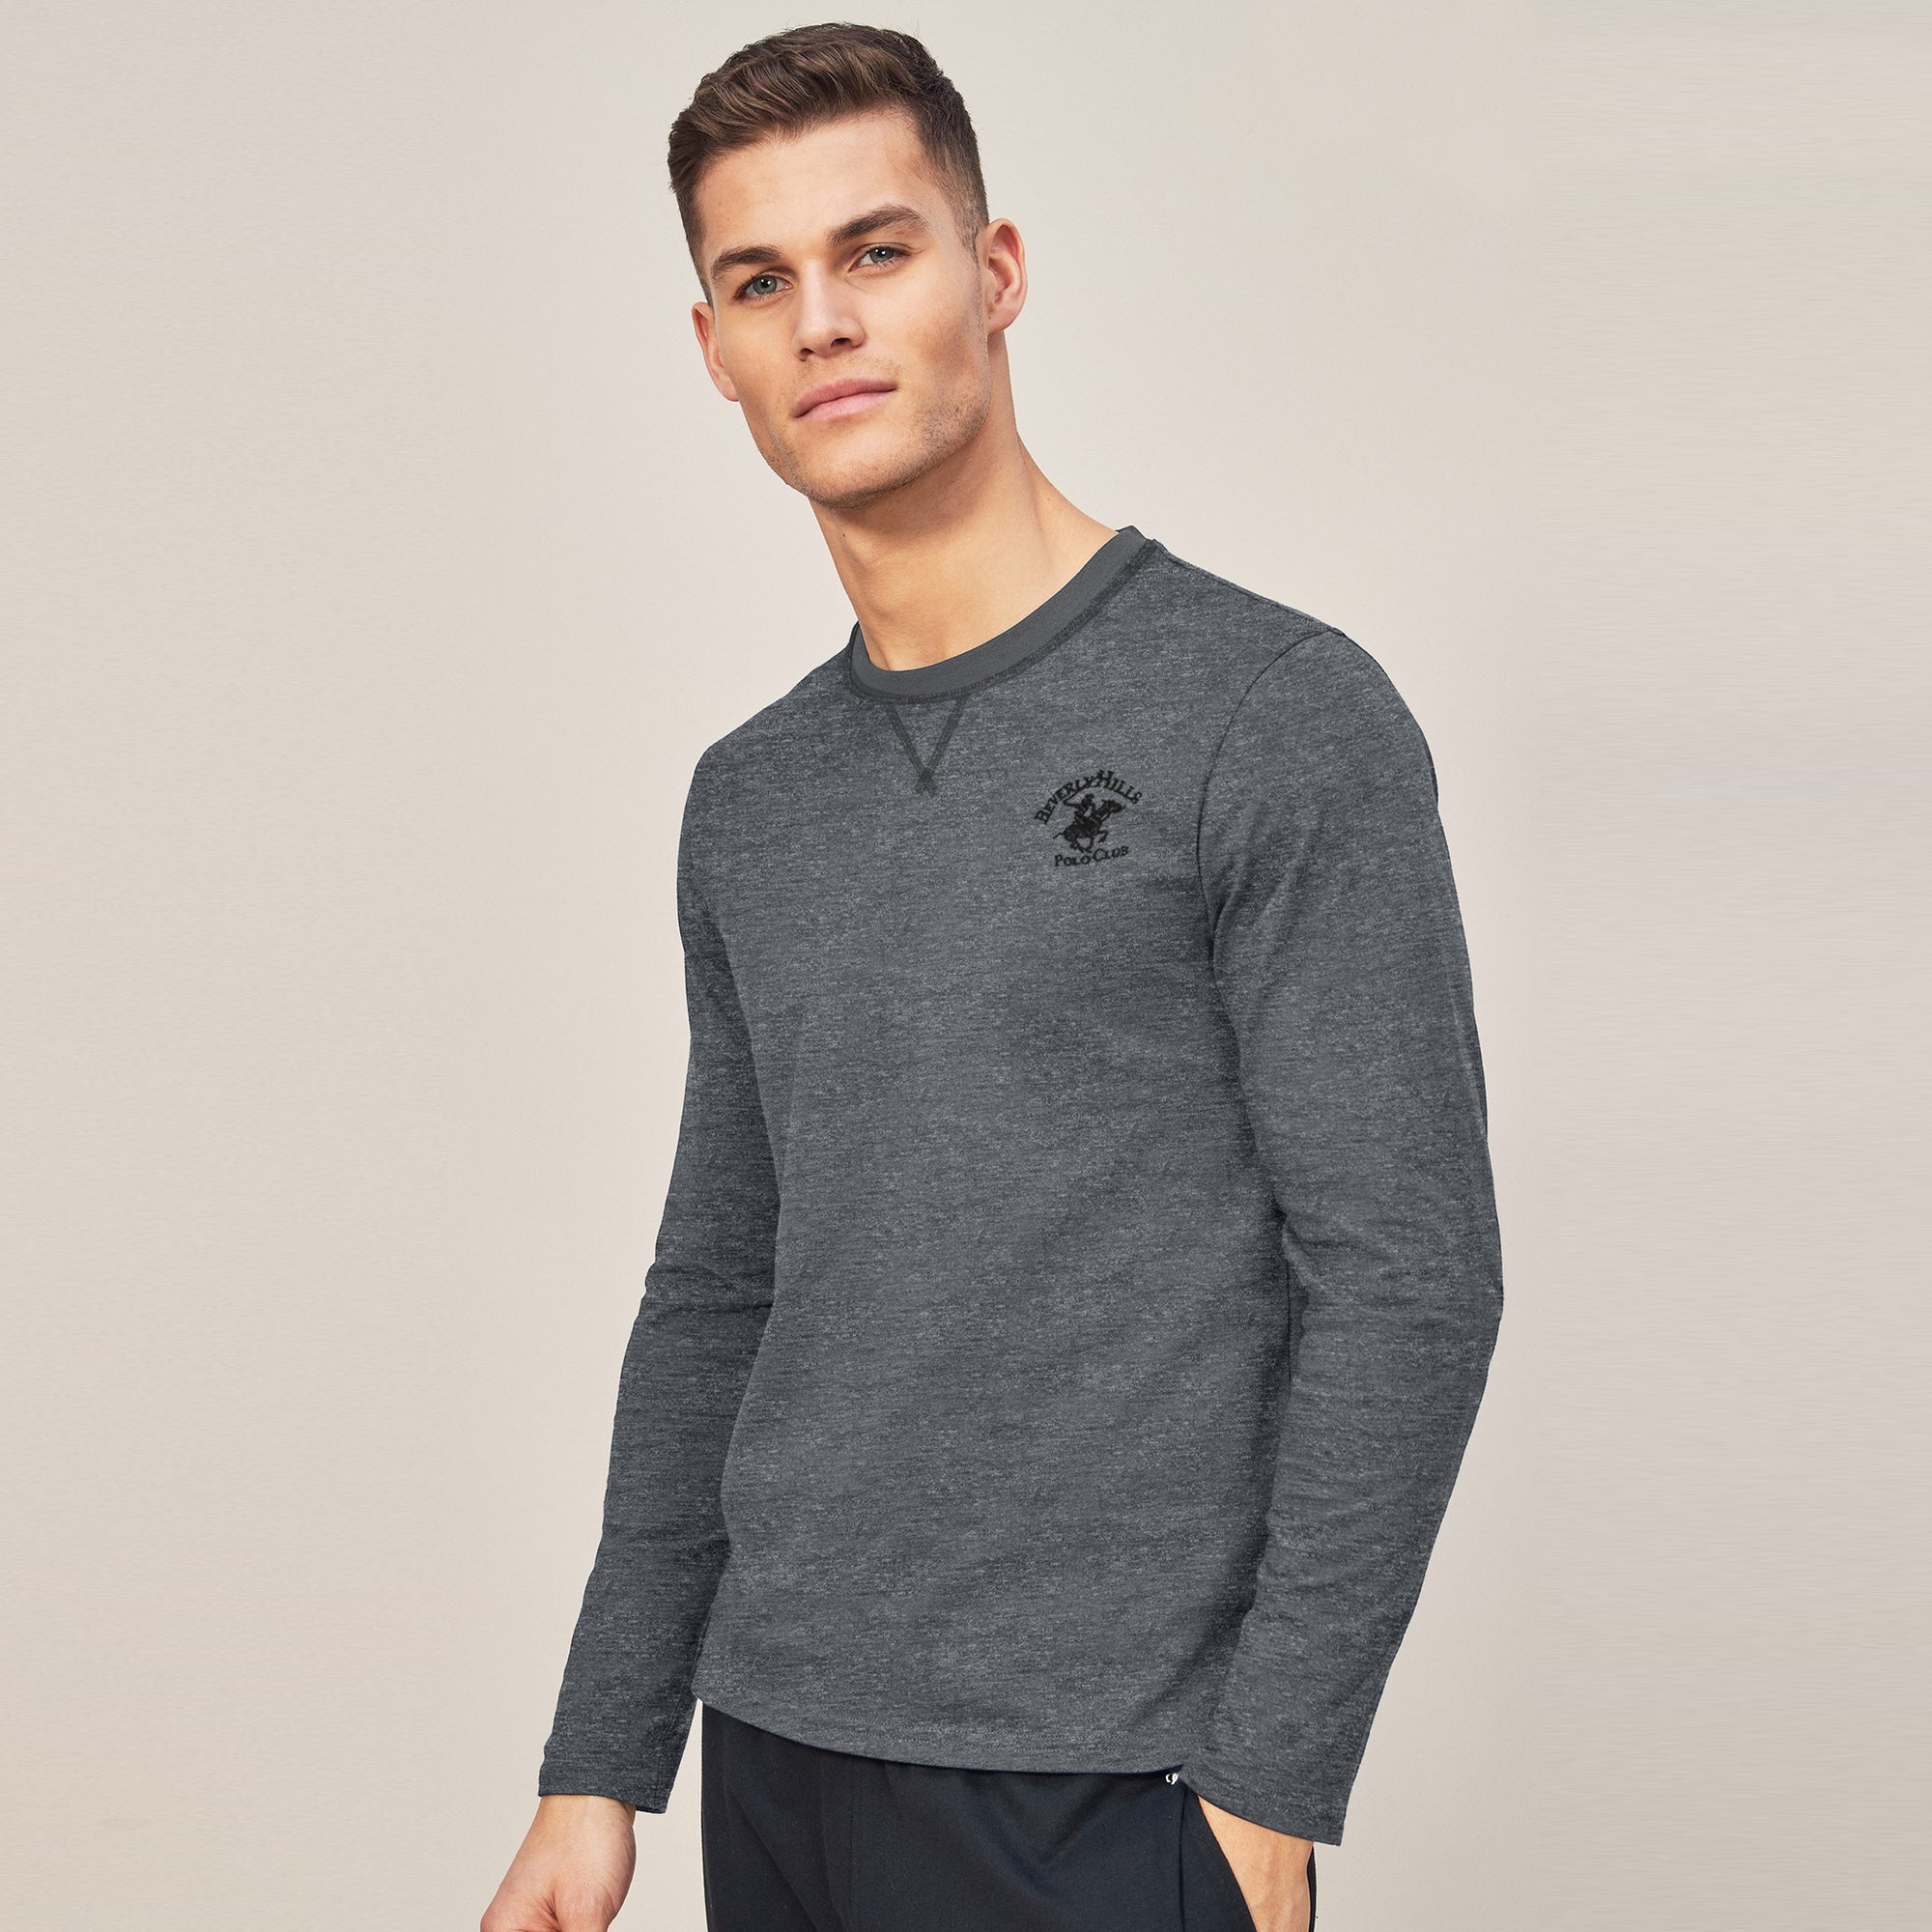 Beverly Hills Single Jersey Long Sleeve Tee Shirt For Men-Dark Grey Melange-BE8898